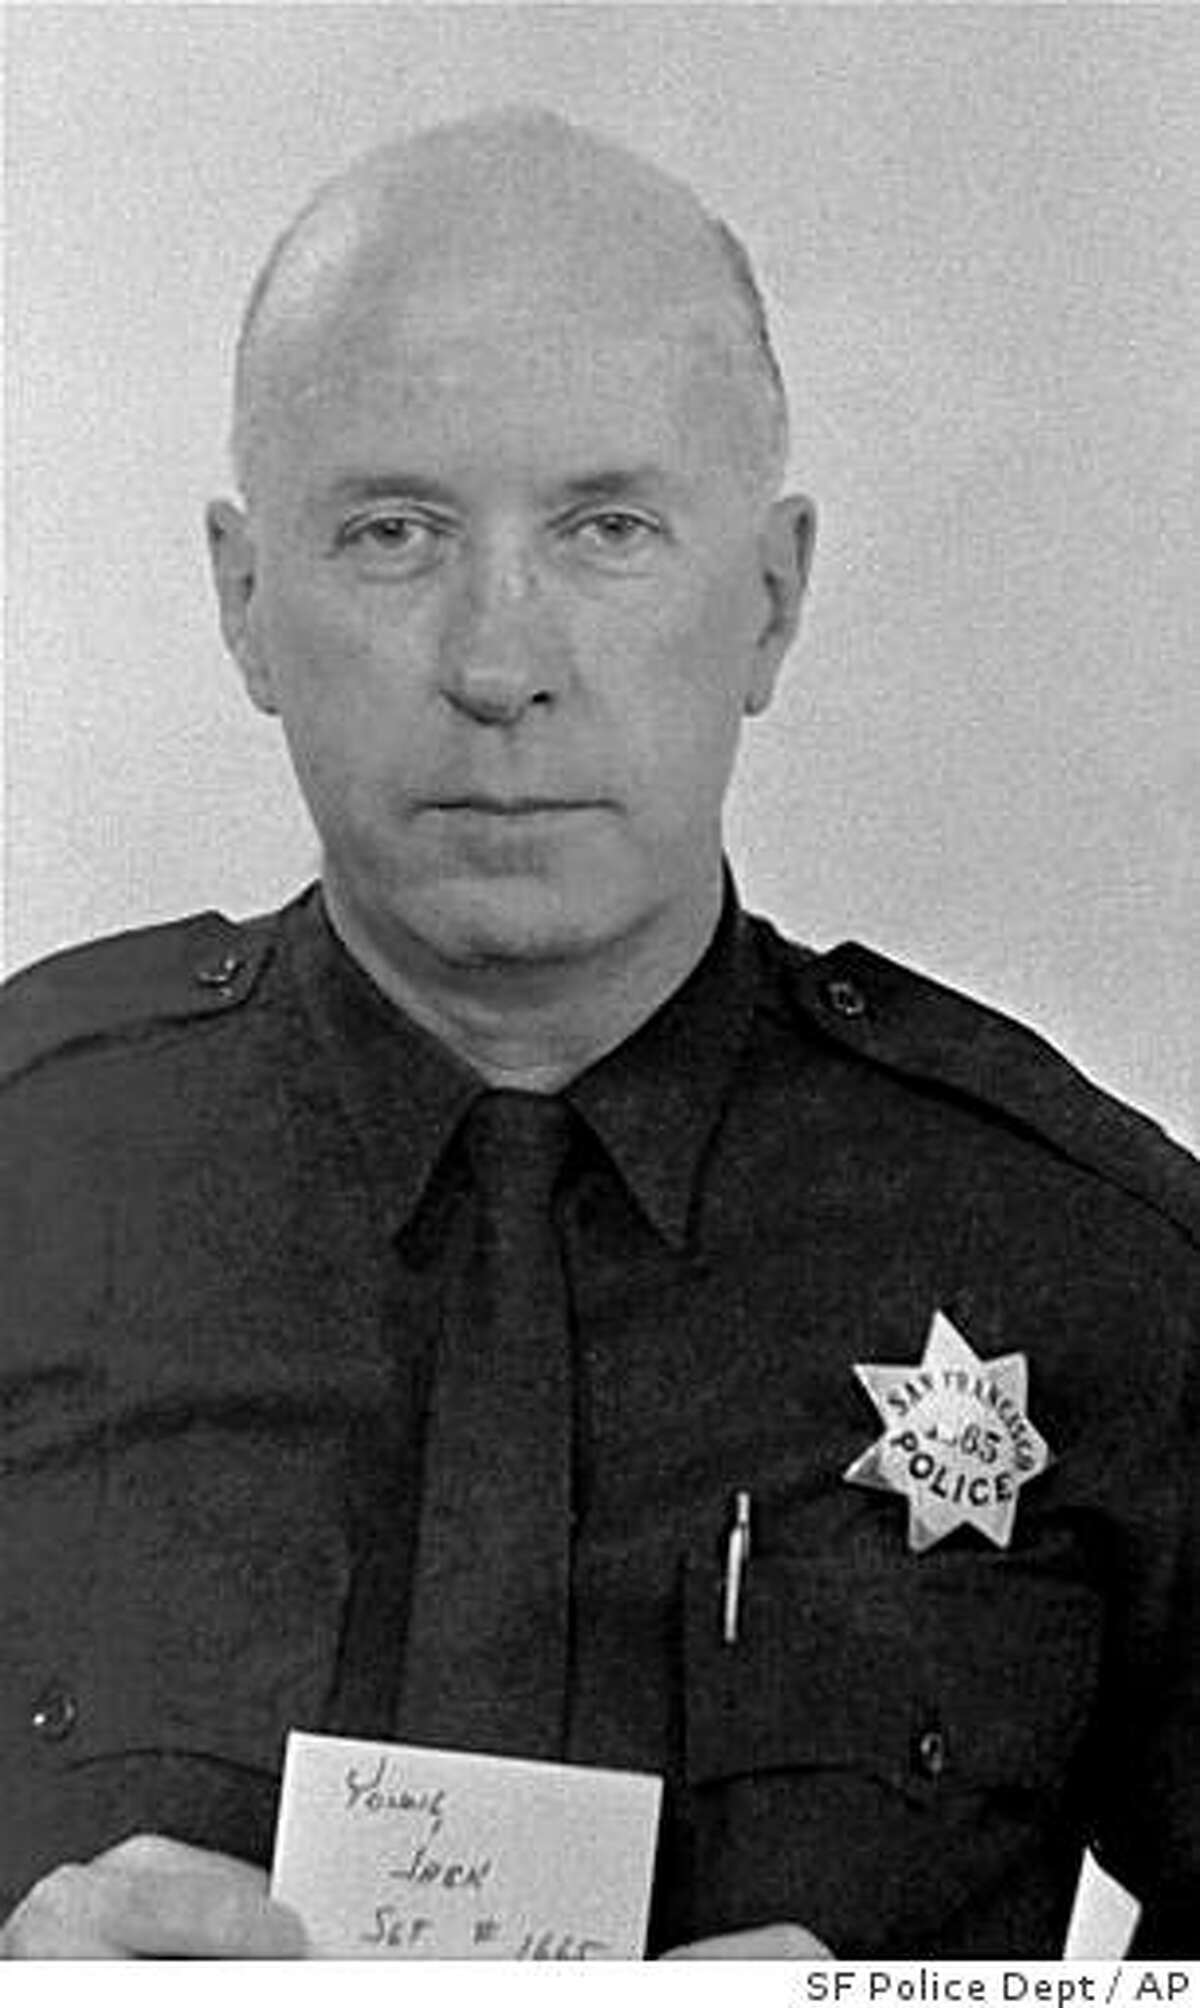 Sgt. John Young was killed in 1971 during an attack on the Ingleside Police Station in San Francisco. Those charged with his murder go on trial June 8.